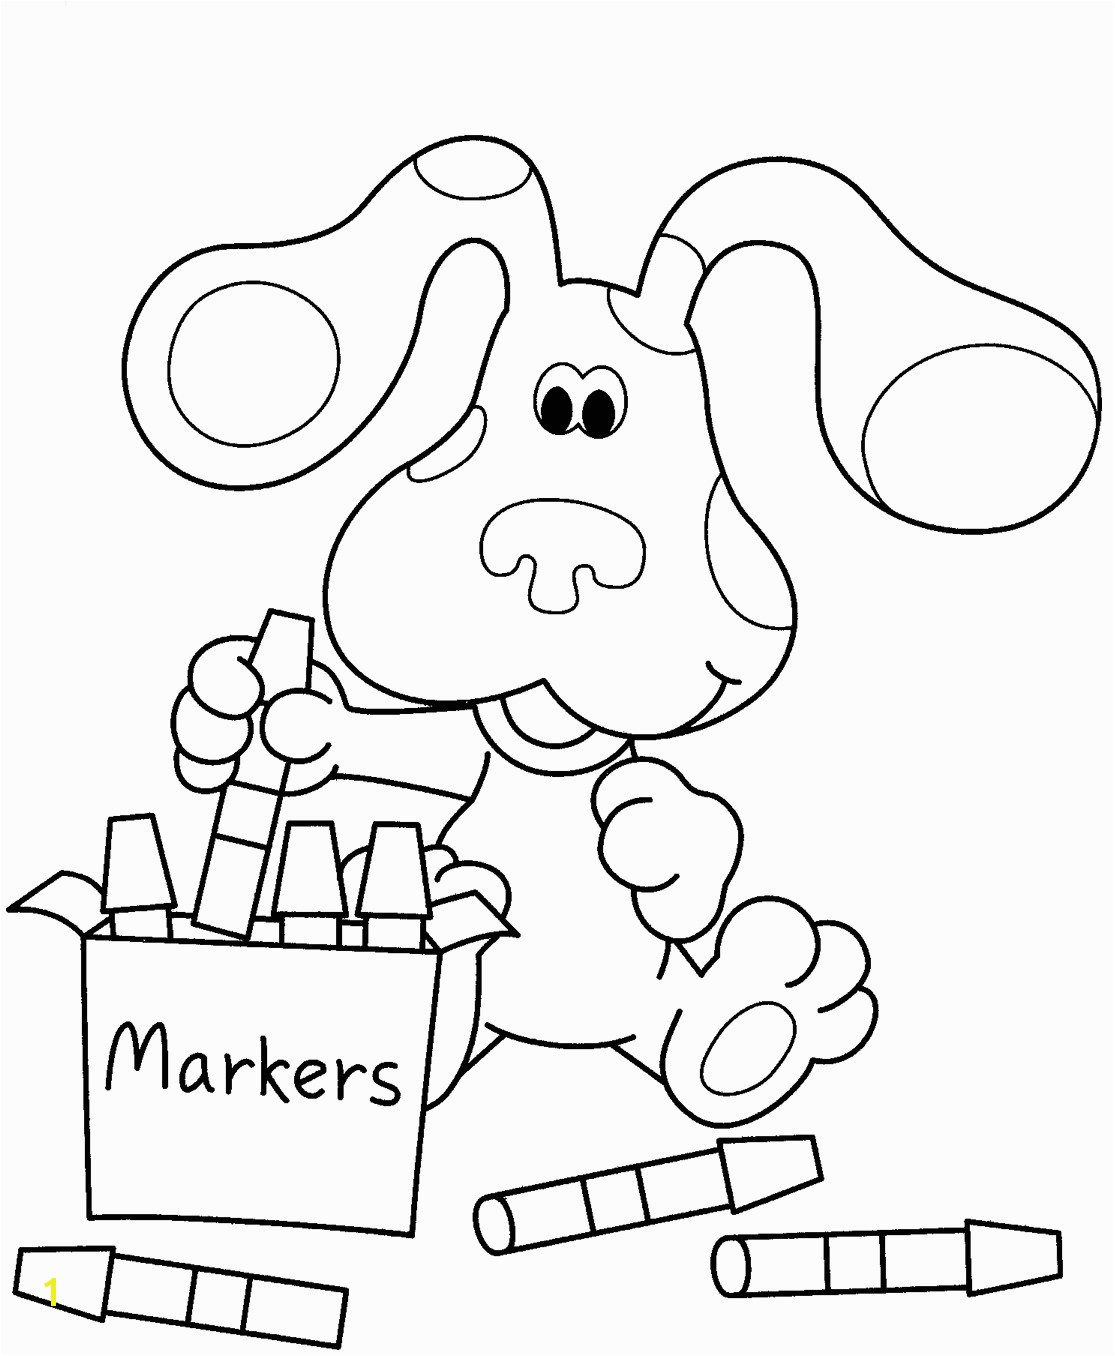 Basketball Team Coloring Pages Unique Nick Jr Printable Coloring Pages Gallery